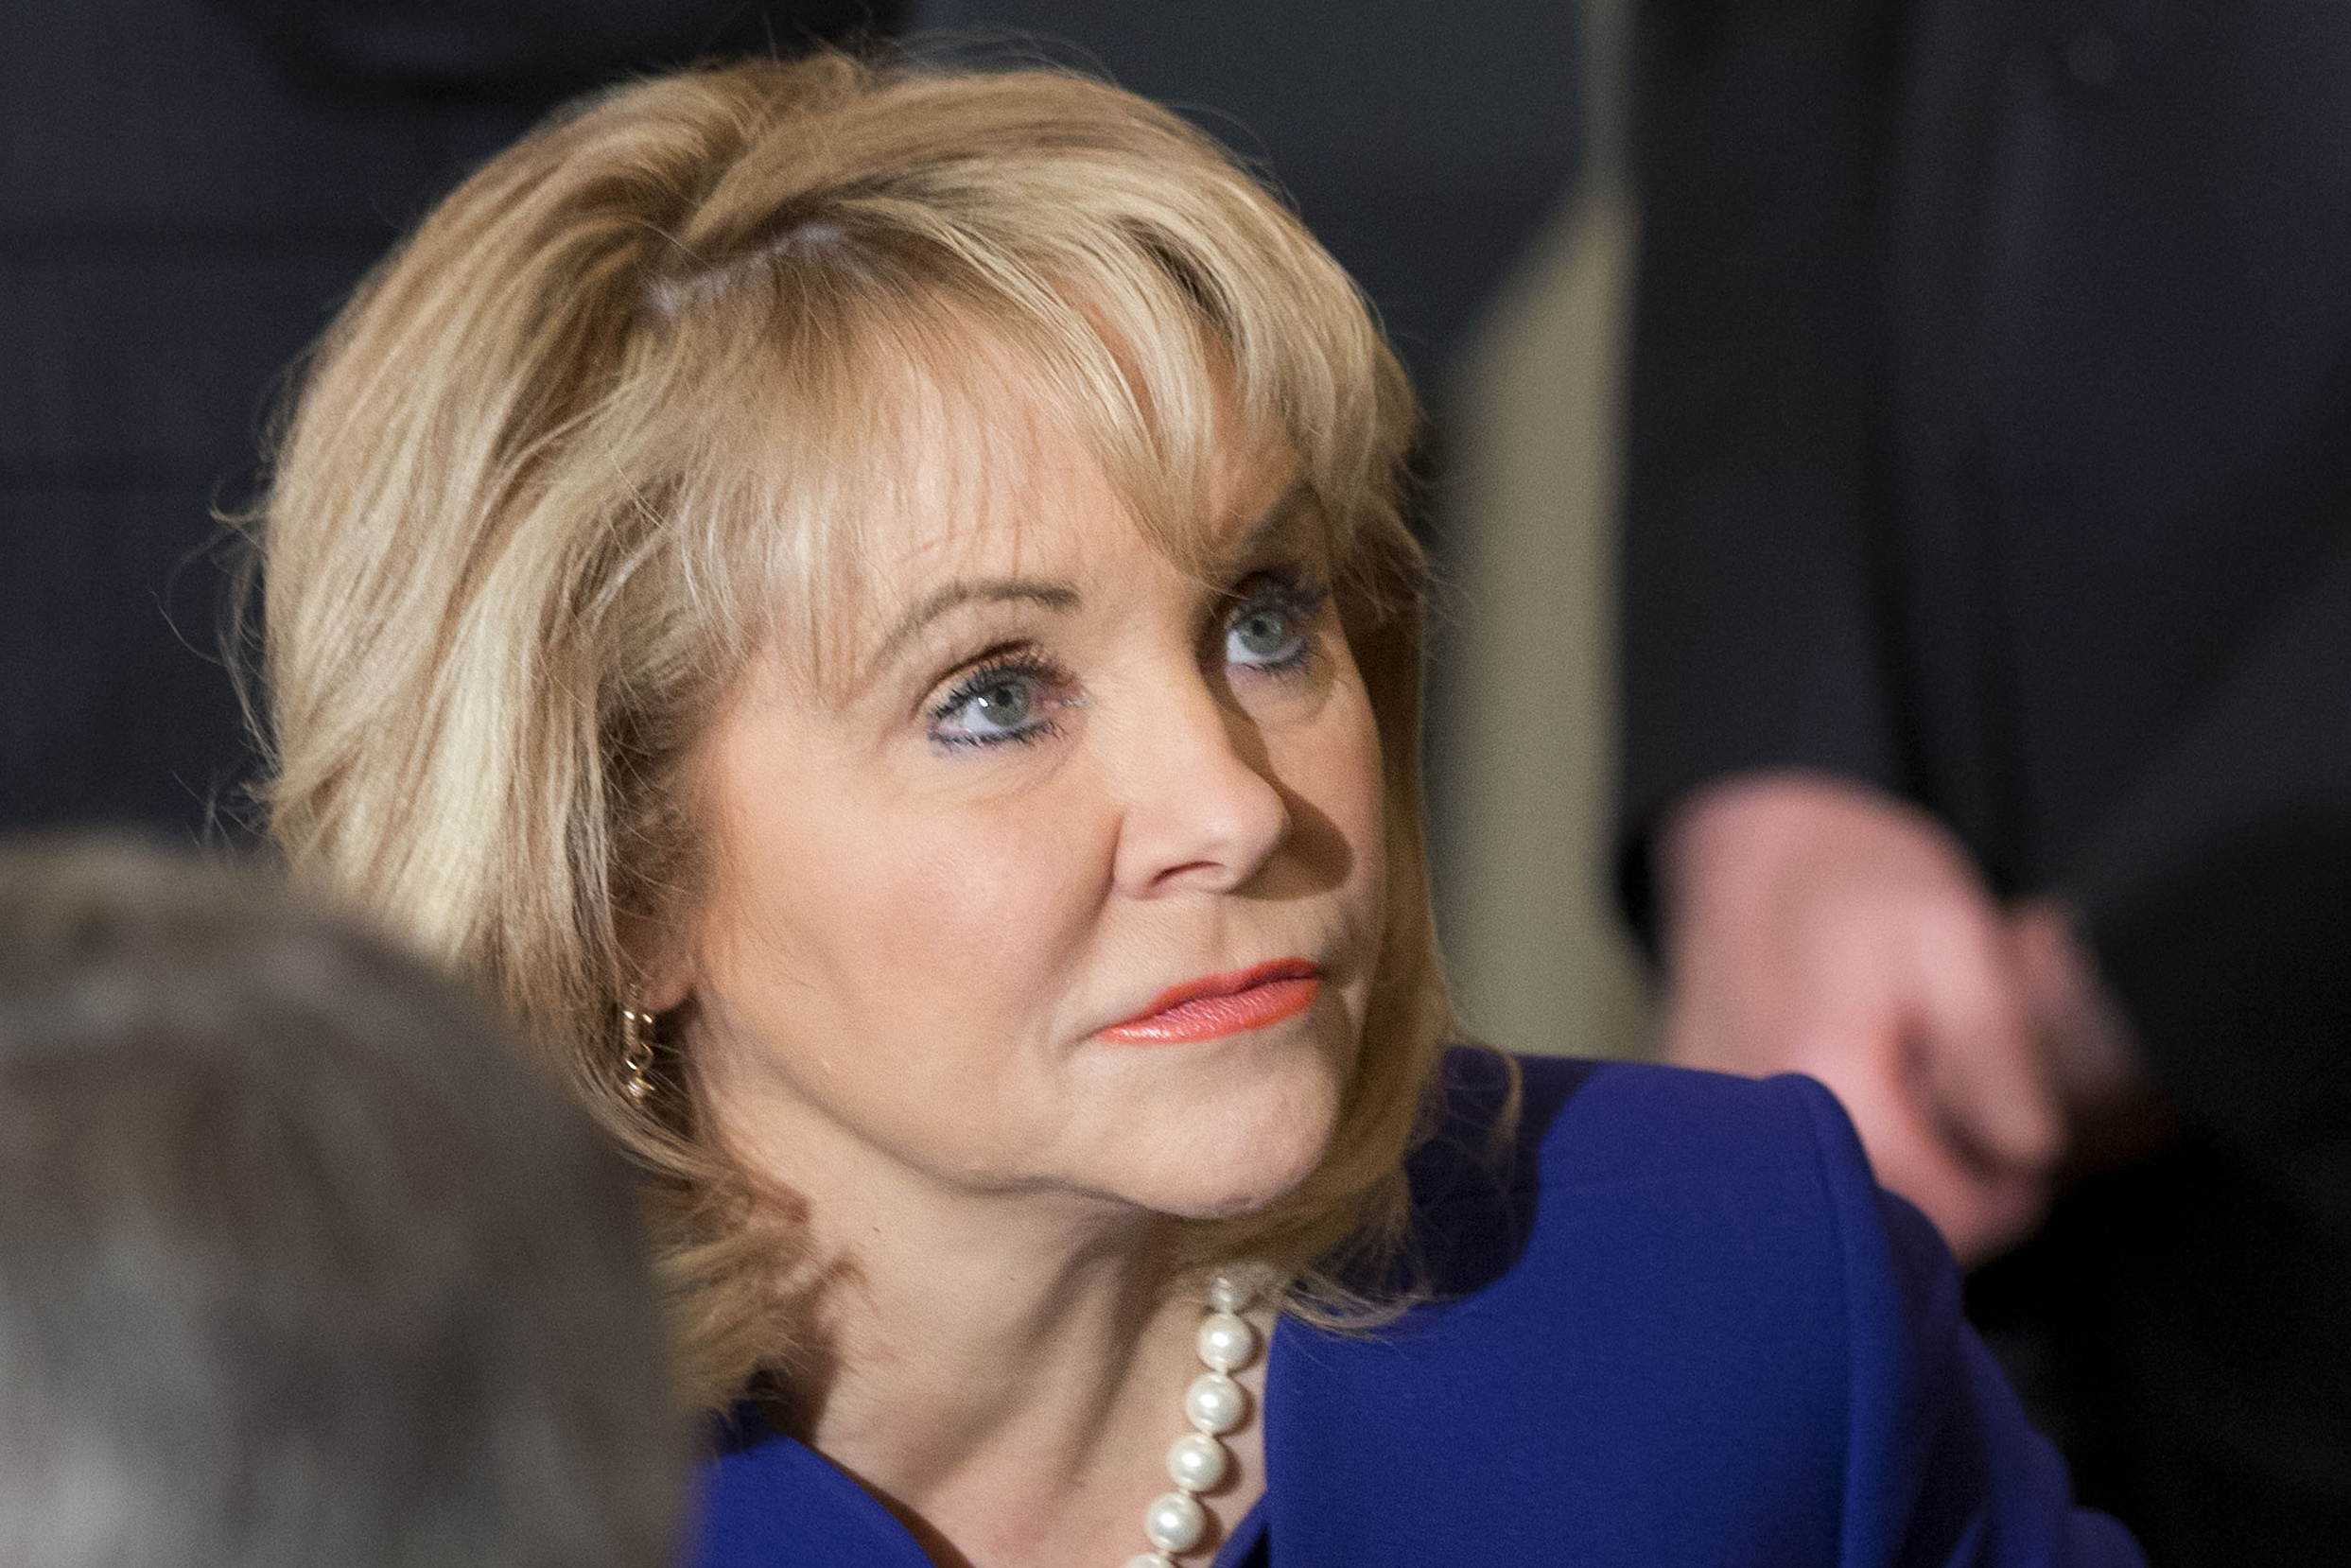 Oklahoma Governor Mary Fallin, chair of the National Governors Association, waits for the arrival of President Barack Obama to speak to members of the National Governors Association at the White House on Feb. 24, 2014